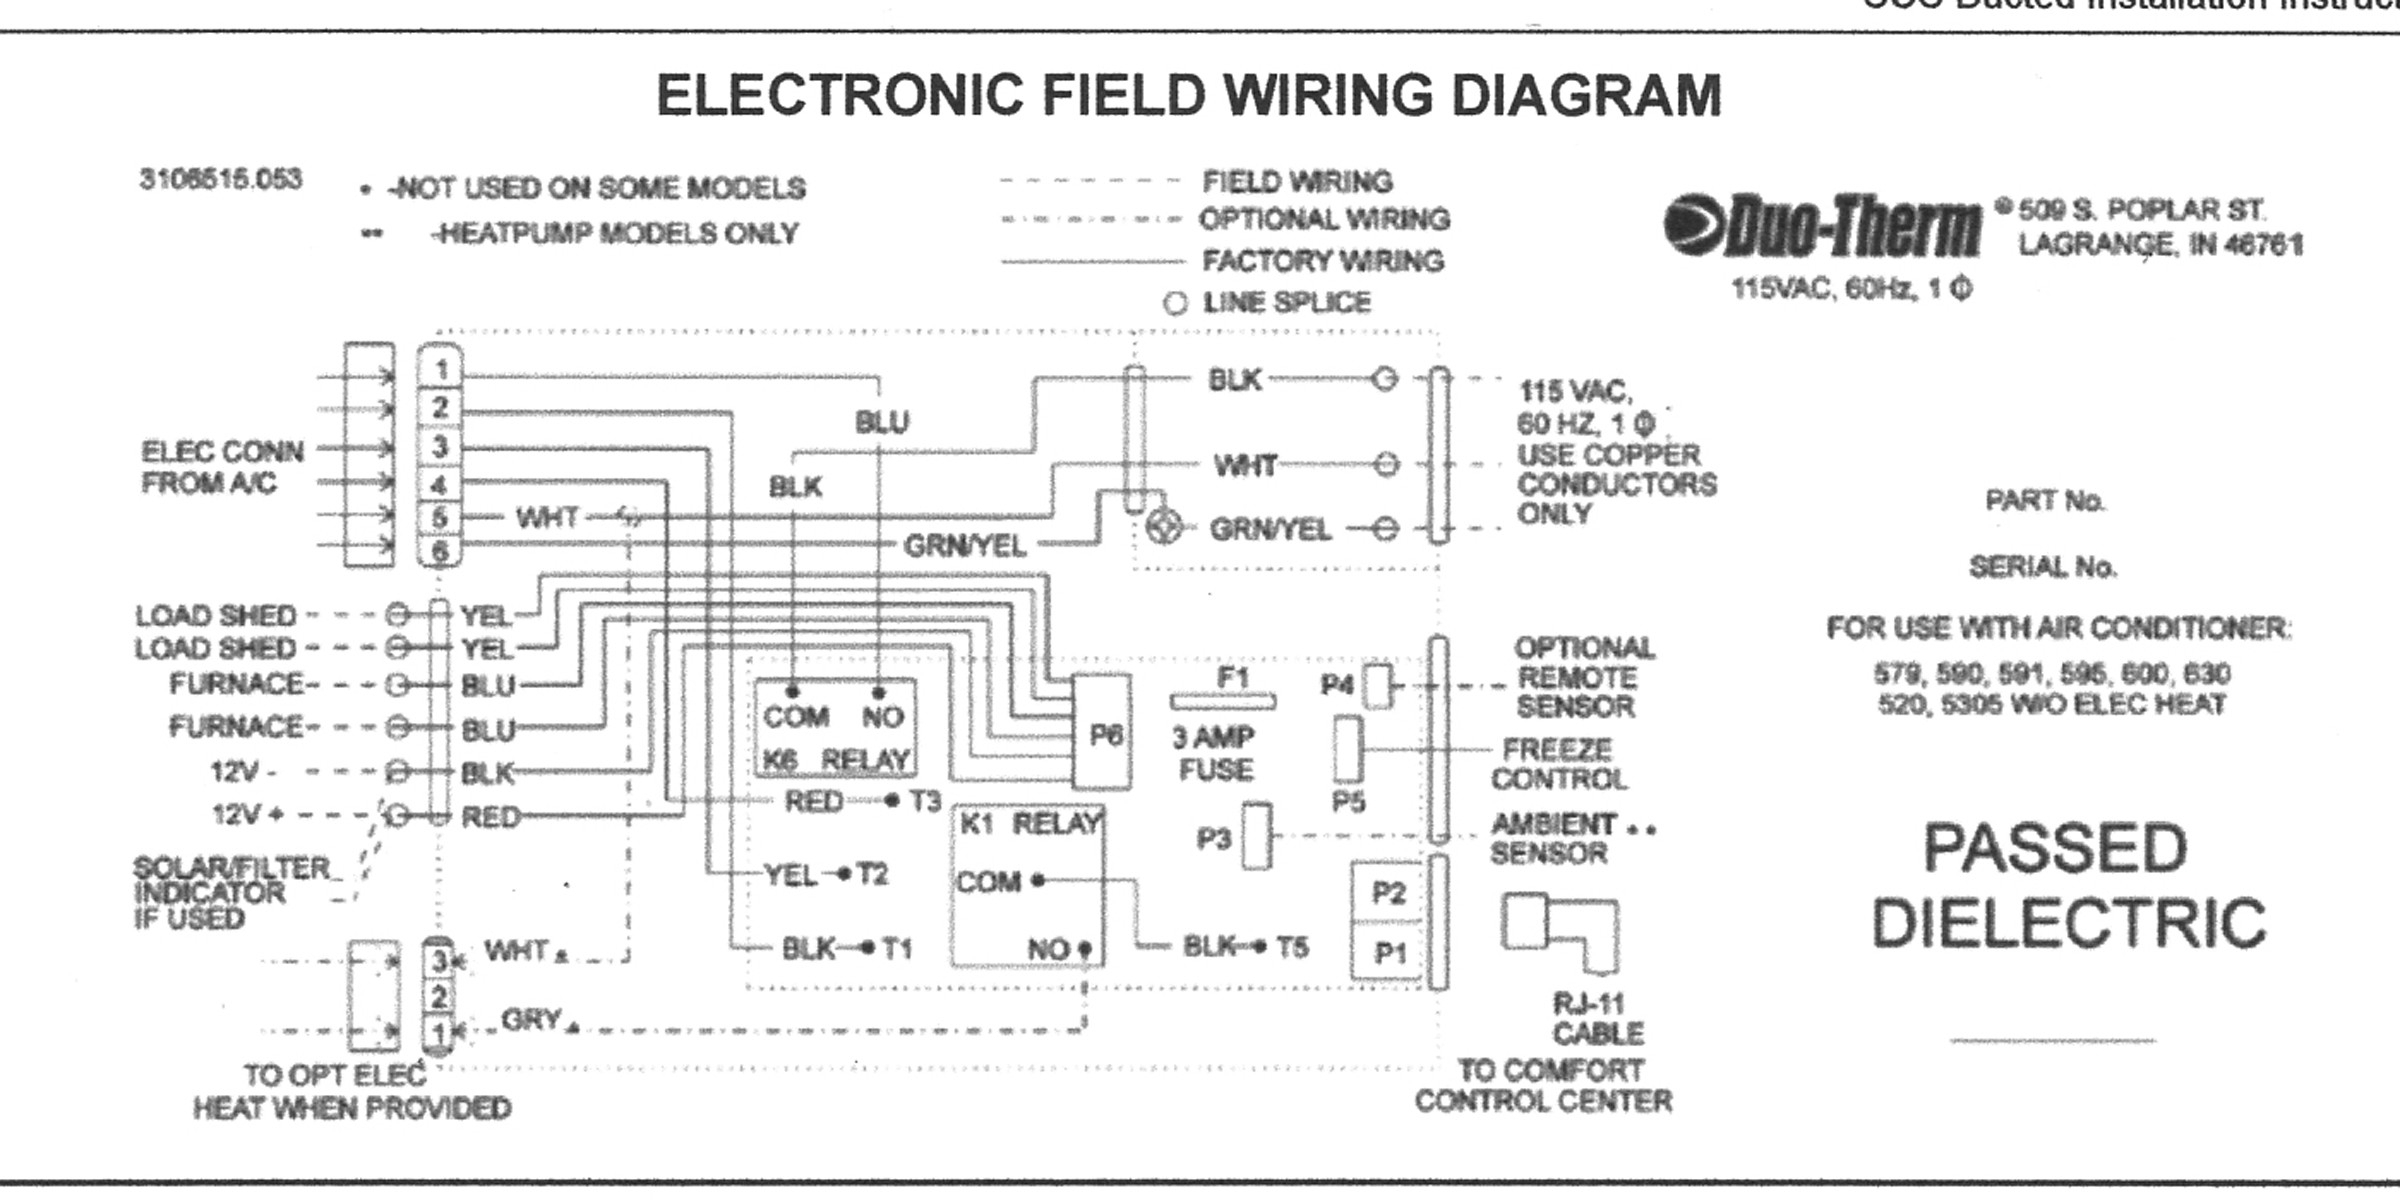 Dometic thermostat Wiring Diagram | Free Wiring Diagram on